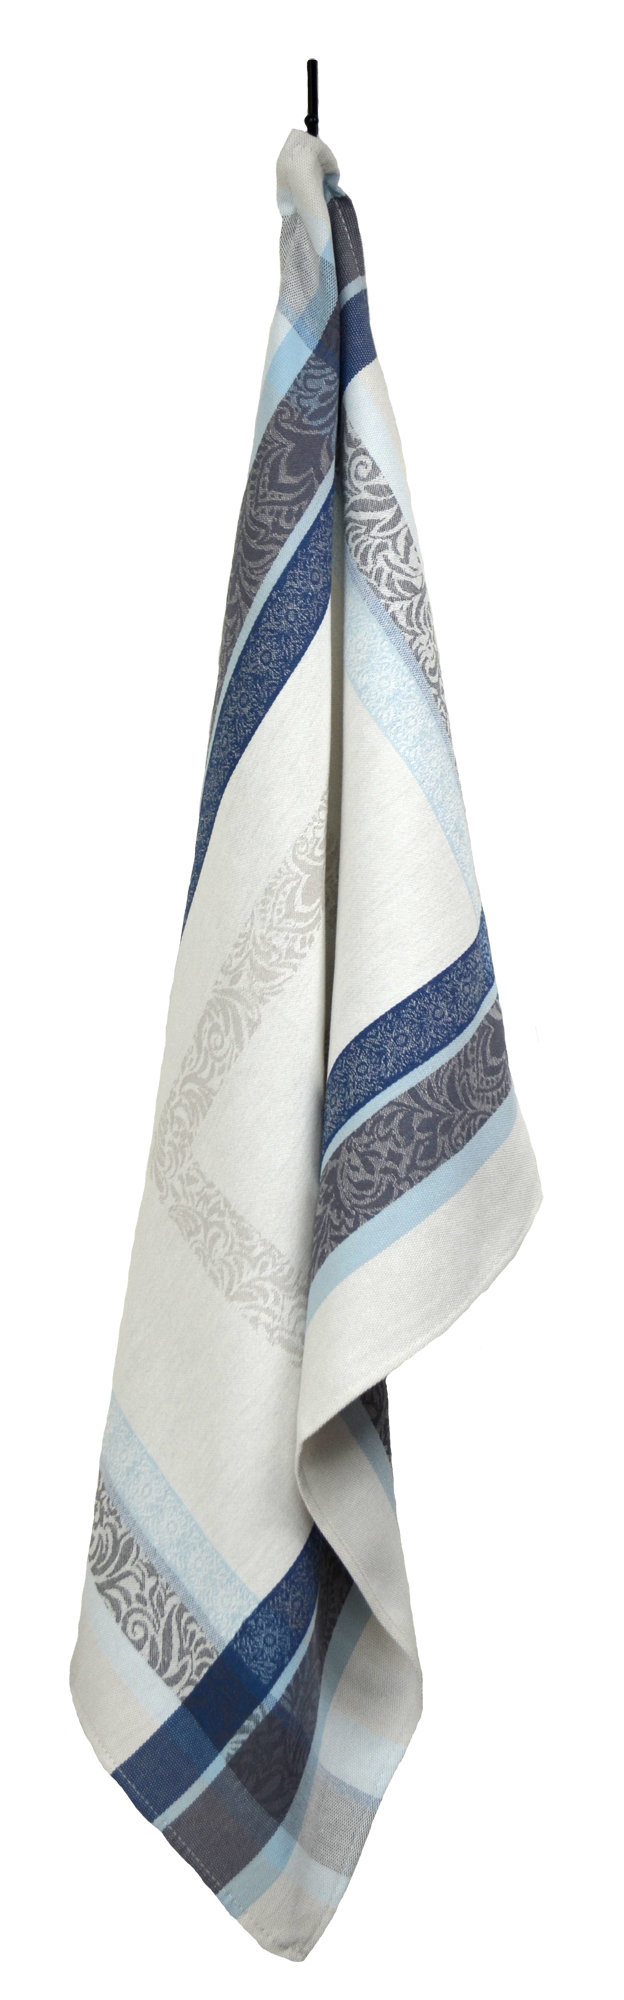 """Floral French Jacquard Tea Towel - Collection """"Bargeme"""" Cream/Blue, Size: 21 x 27 inches, Price CAN$19.95"""